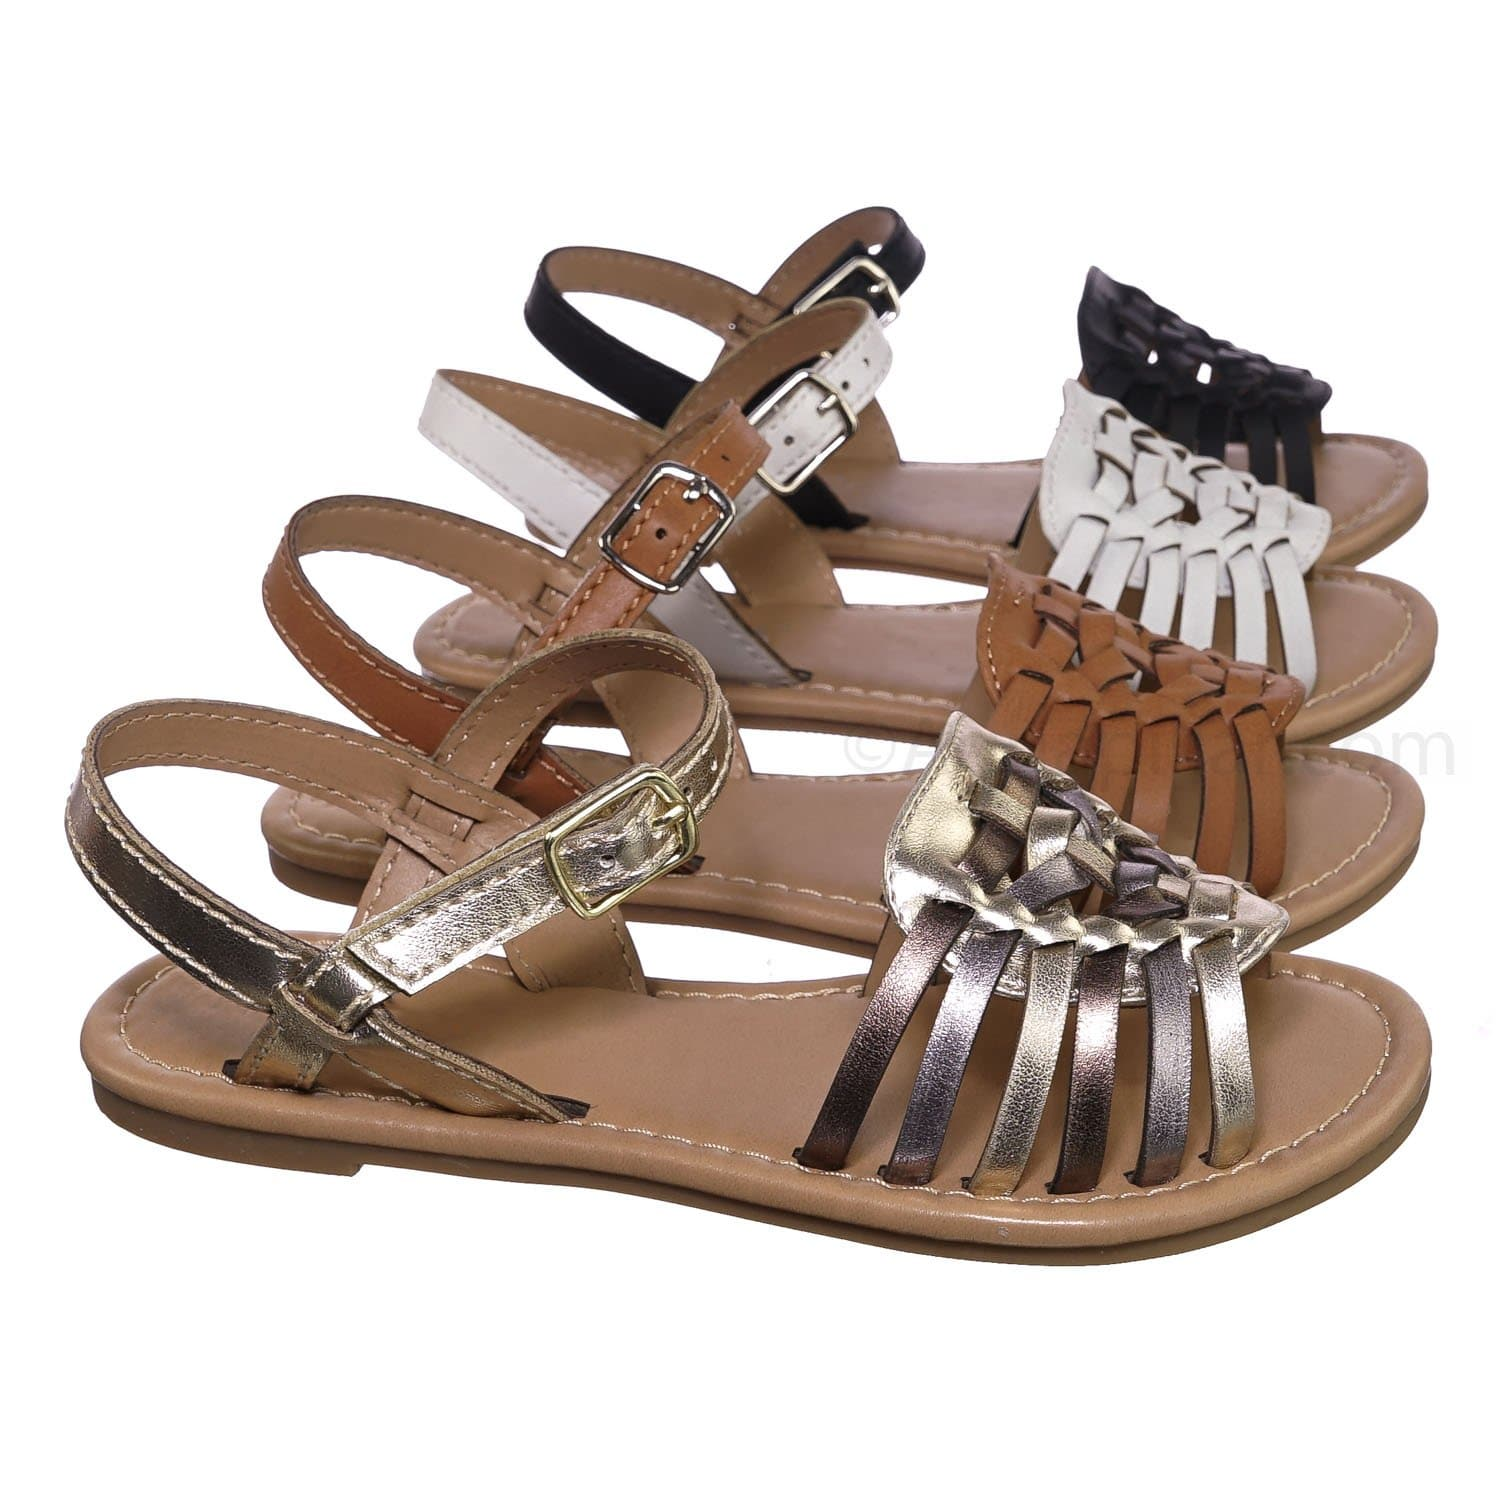 Milene2 Light Gold Multi Kids Woven Fisherman Huarache Flat sandal - Girl Children Open Toe Shoes